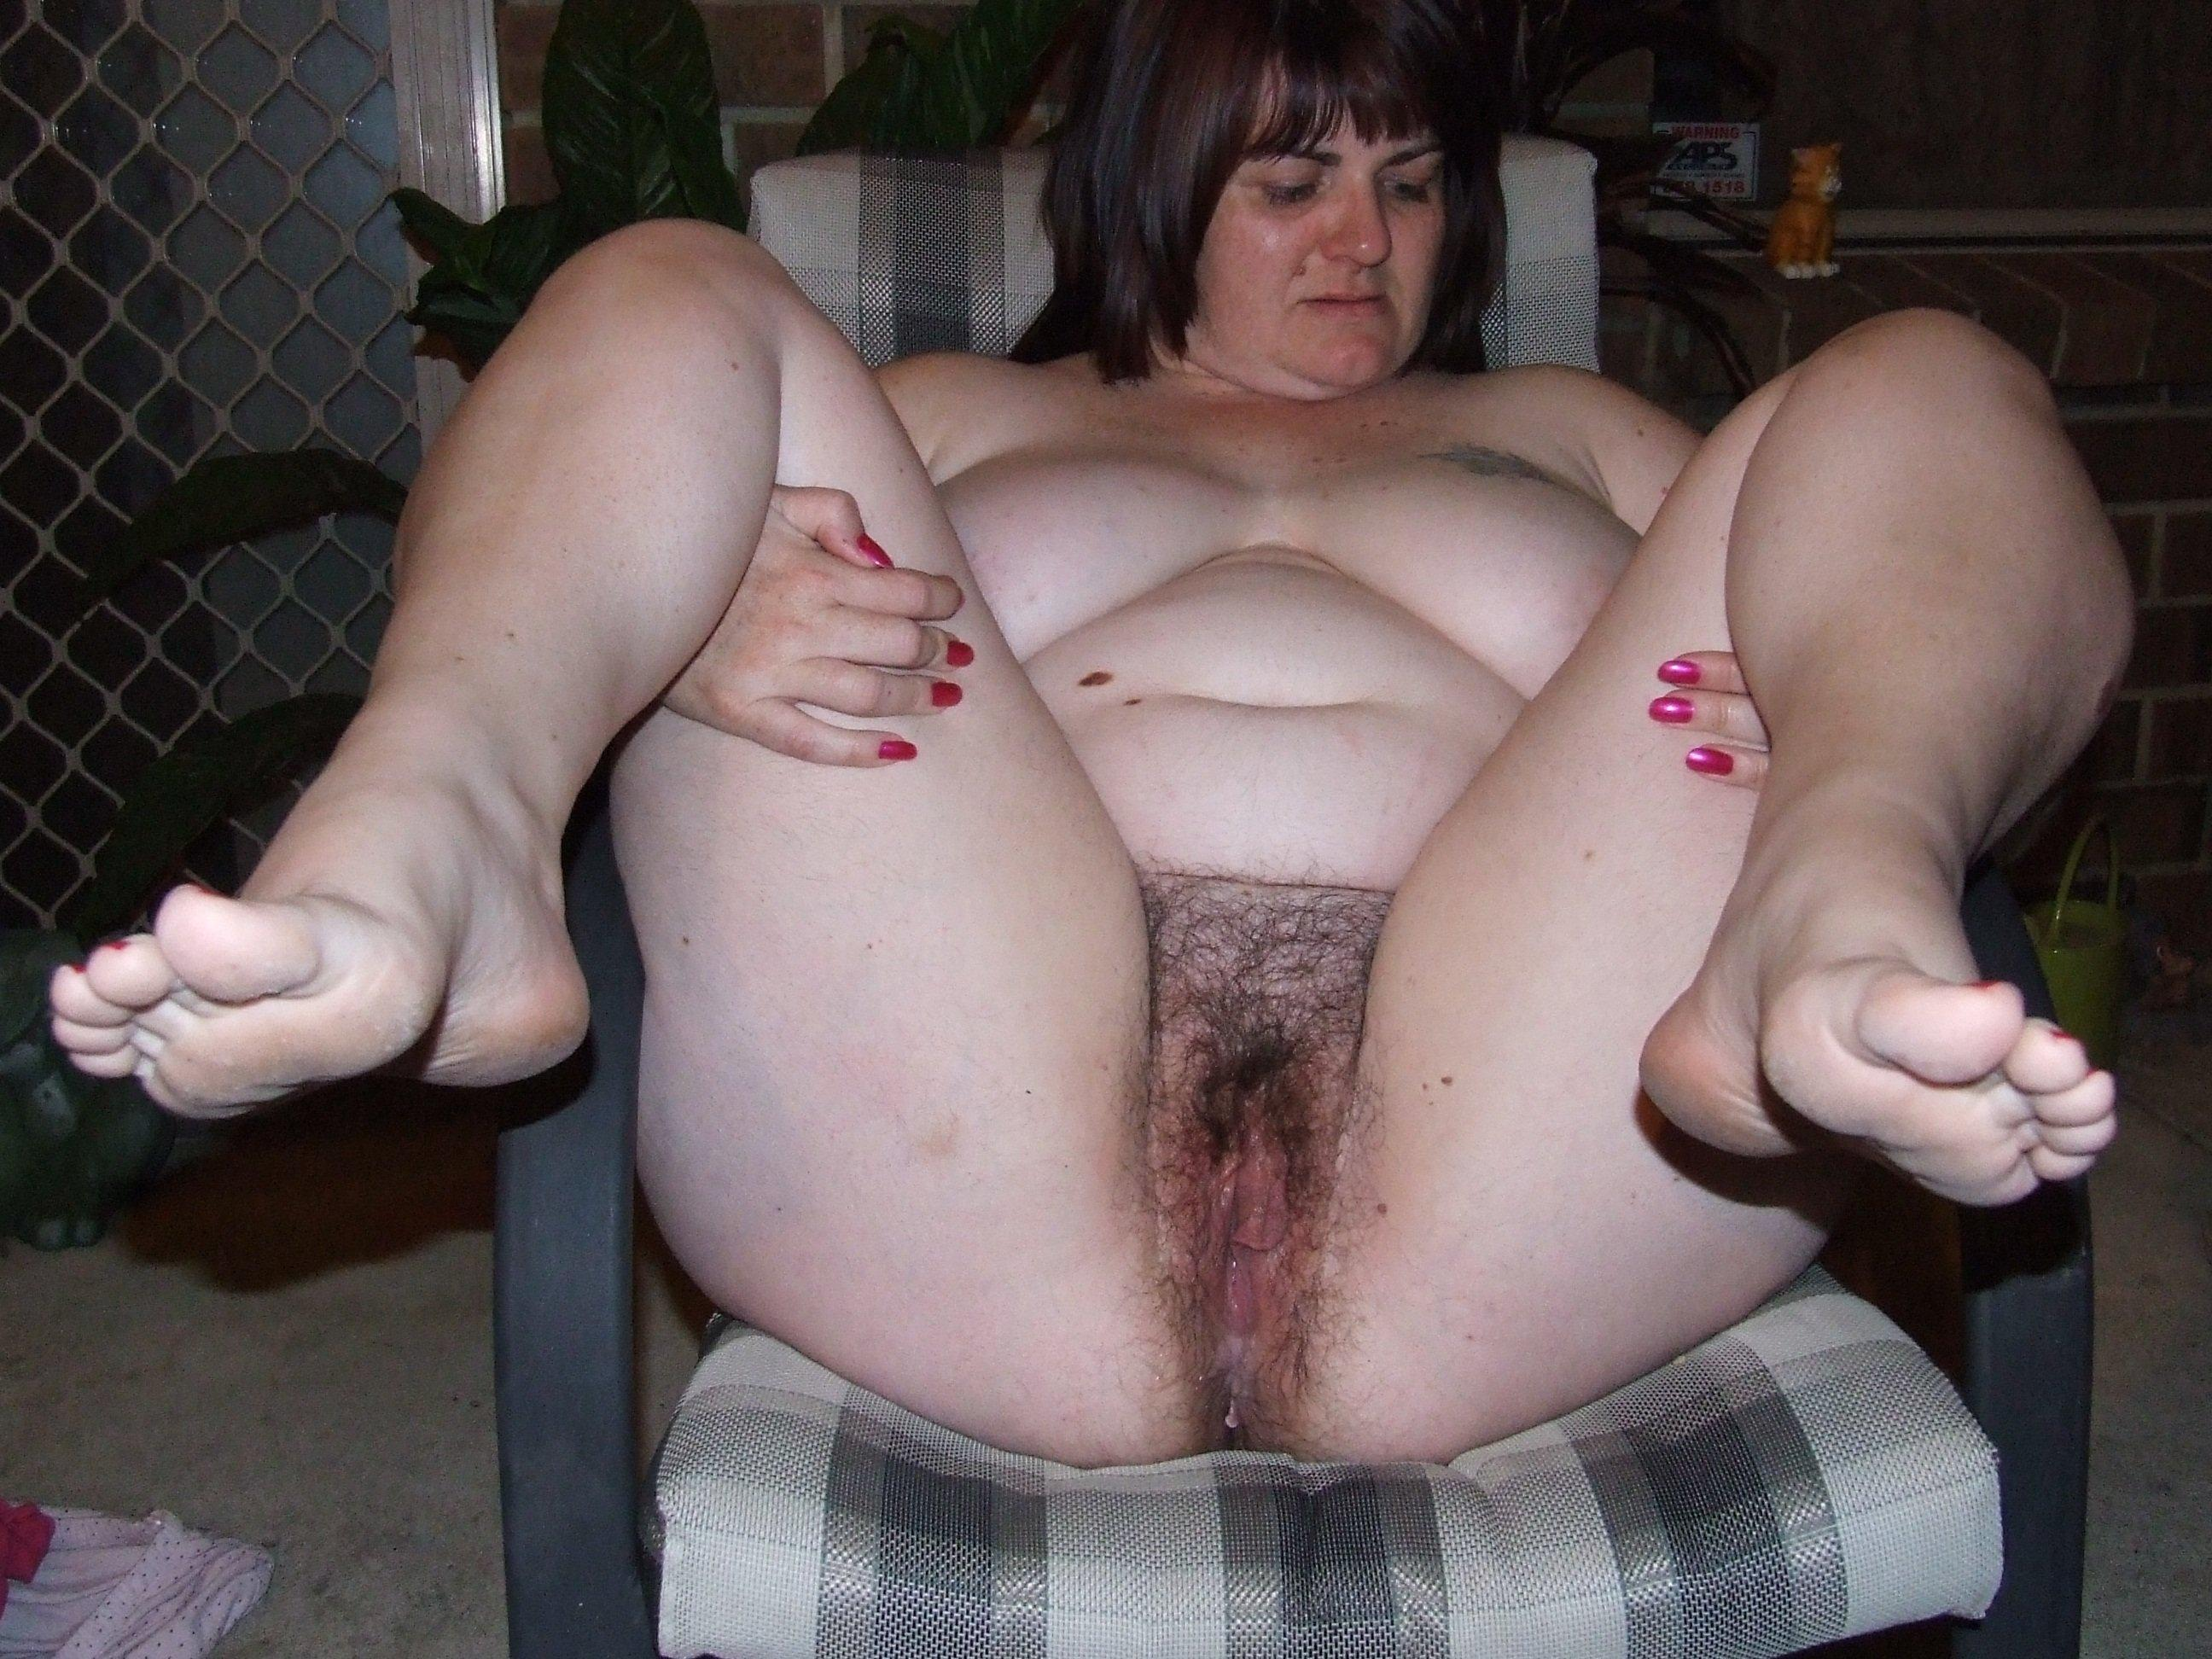 Chubby amatuer wife videos pic 470